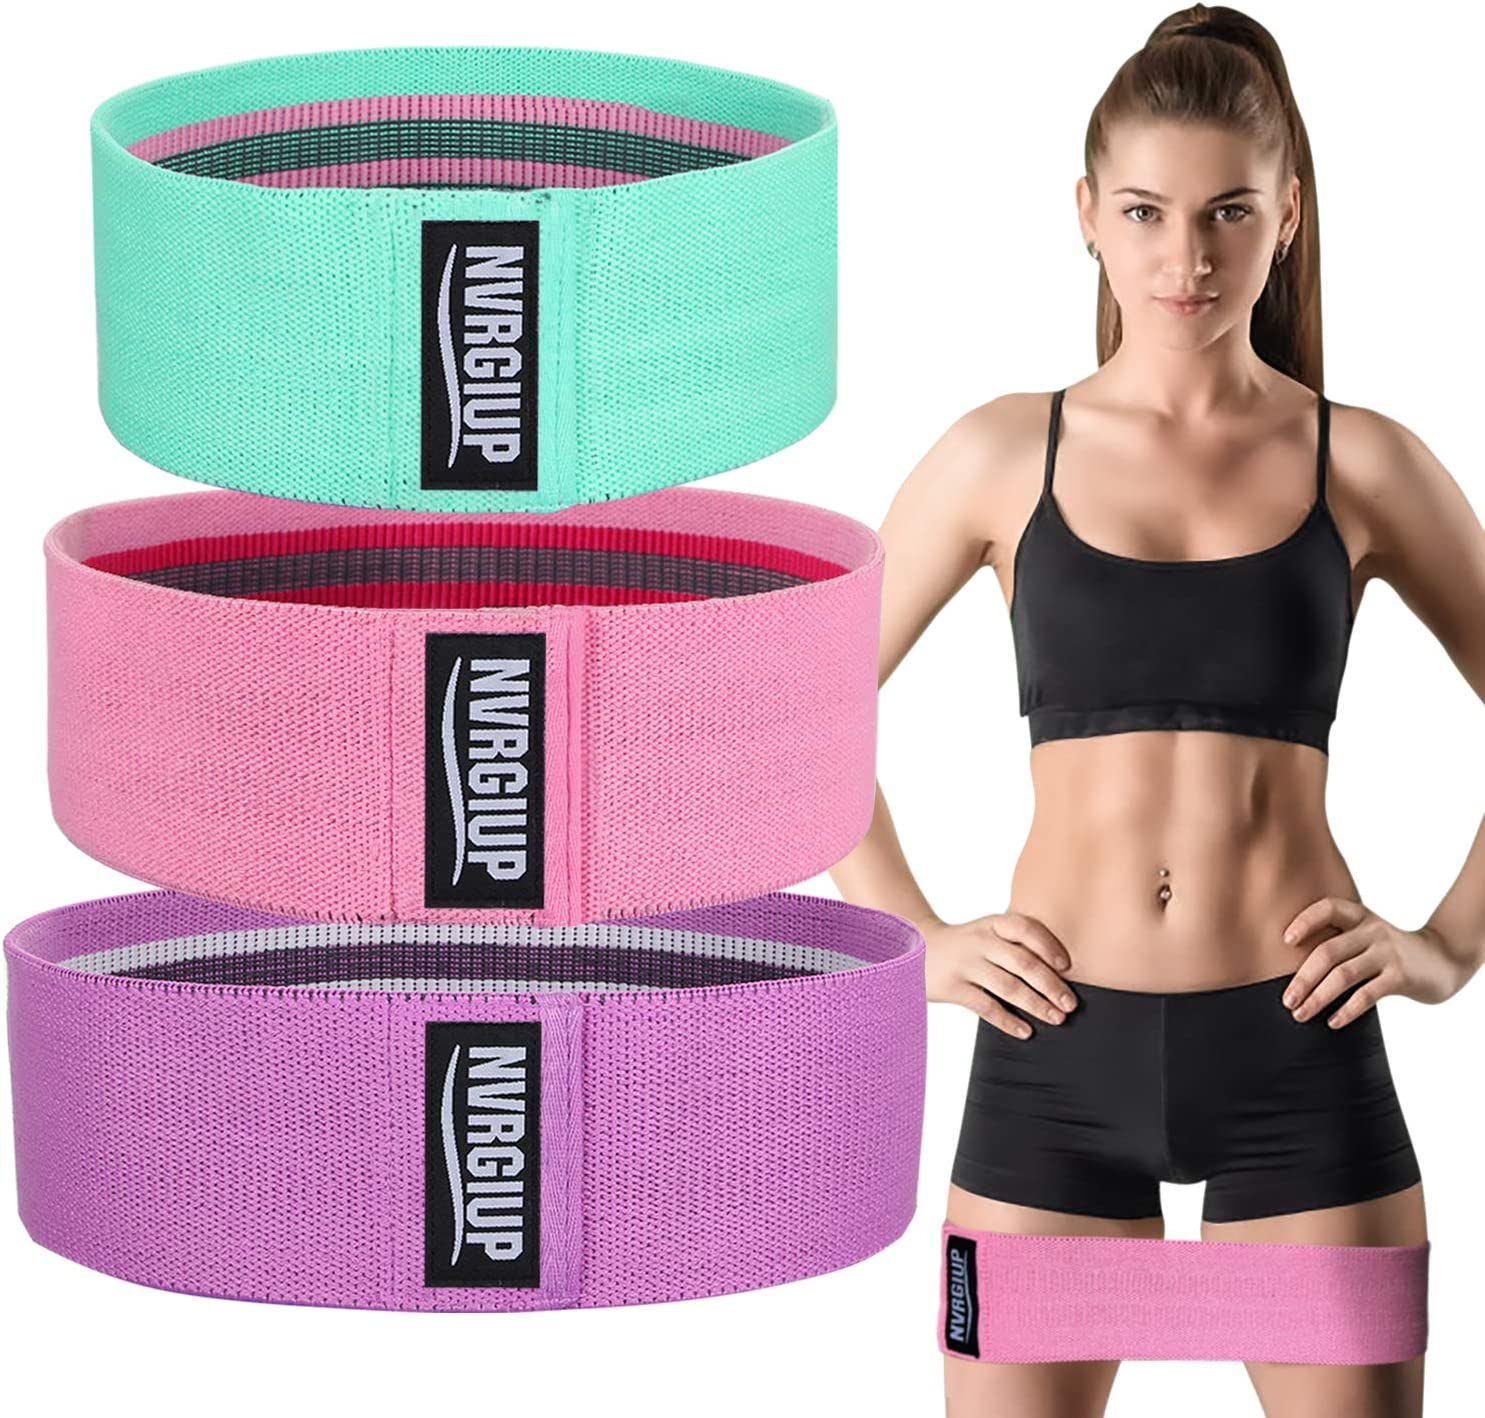 NVRGIUP Exercise Resistance Bands for Legs and Glute, Upgrade Thicken Anti-Slip & Roll Home Gym Workout Booty Bands, Wide Fabric Loop Thigh Squat Bands Set for Women with Ebook & Video